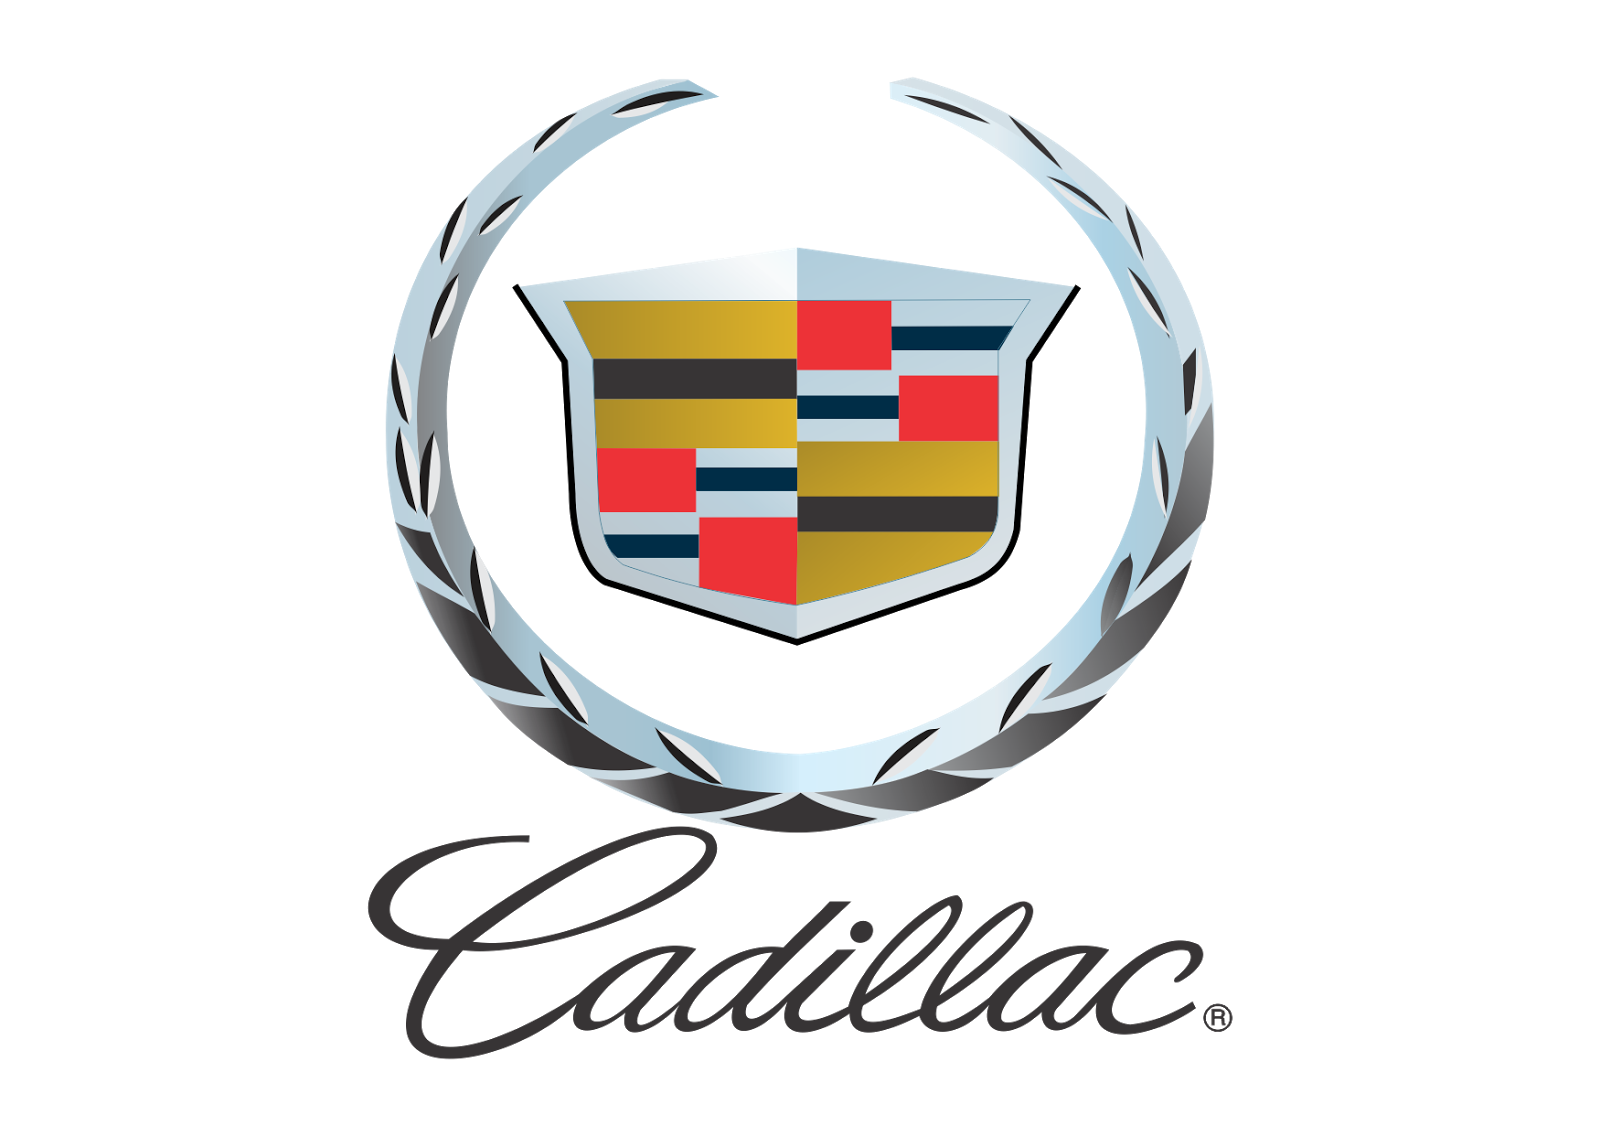 Cadillac crown clipart png royalty free library Cadillac cars PNG images free download png royalty free library